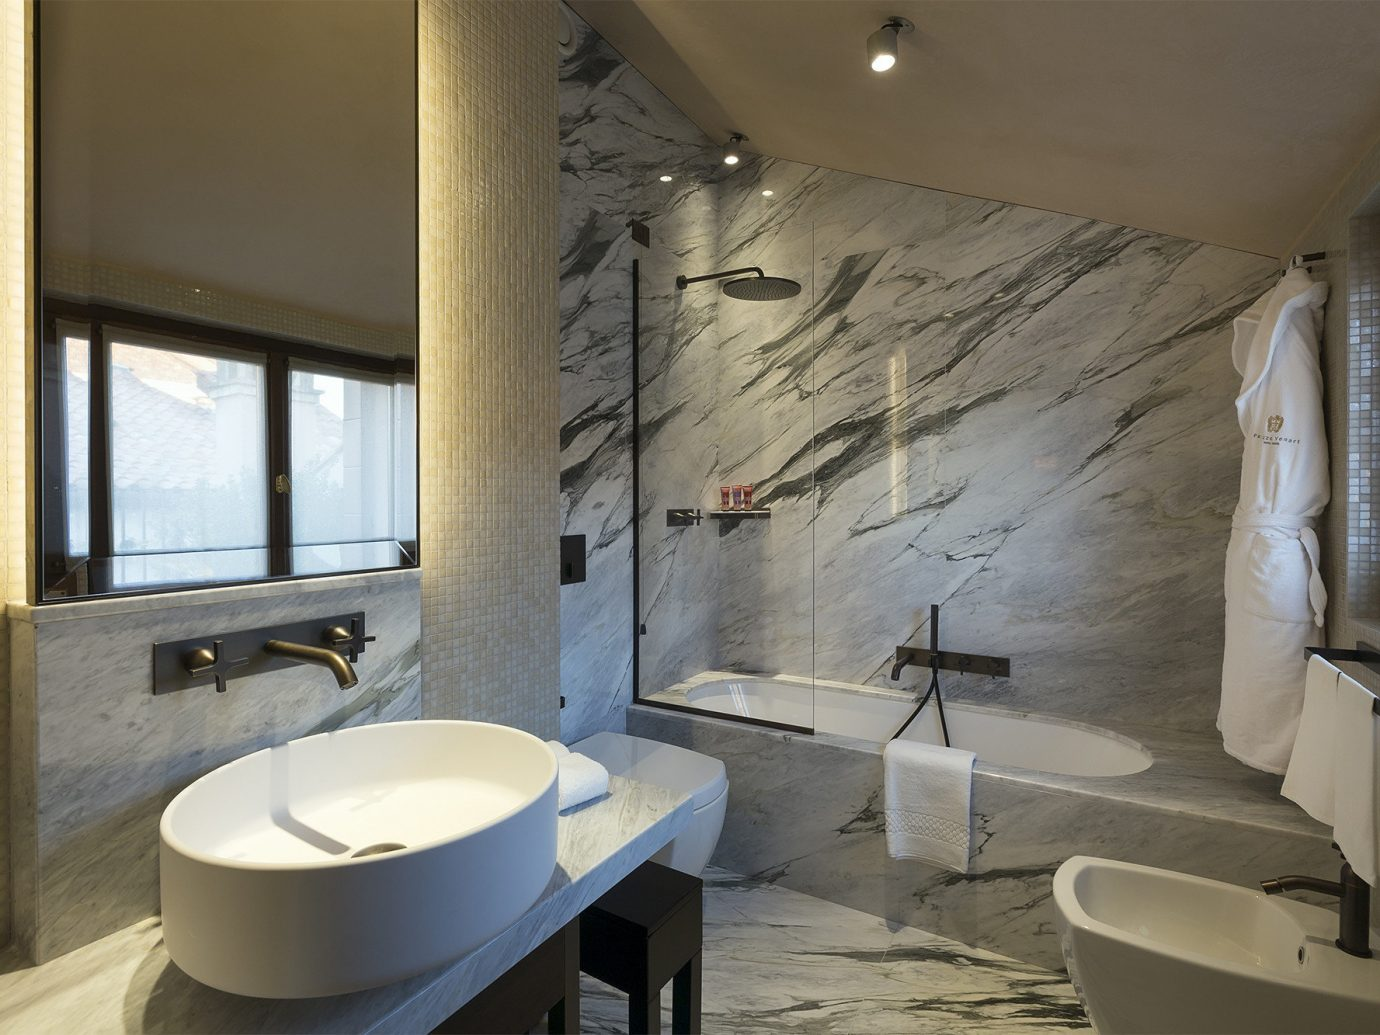 Hotels Italy Luxury Travel Venice indoor bathroom wall window ceiling room property sink Architecture interior design estate floor real estate home tile flooring daylighting interior designer tub Bath bathtub stone